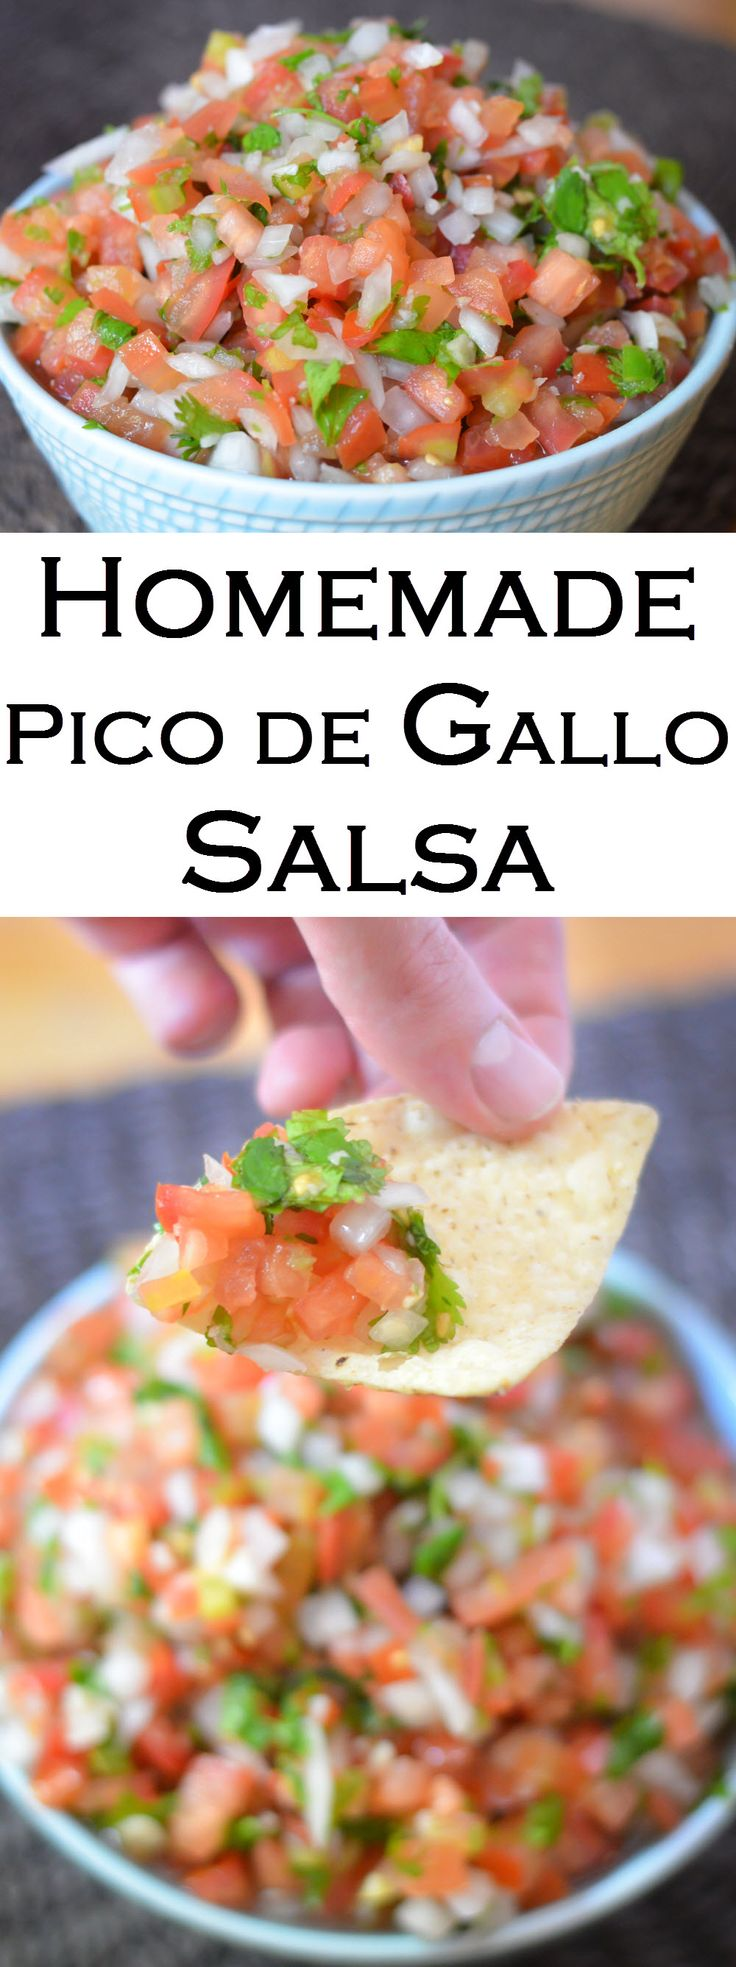 Homemade Pico de Gallo Salsa Recipe with fresh tomatoes, onion, cilantro, jalapeno, and lime juice.